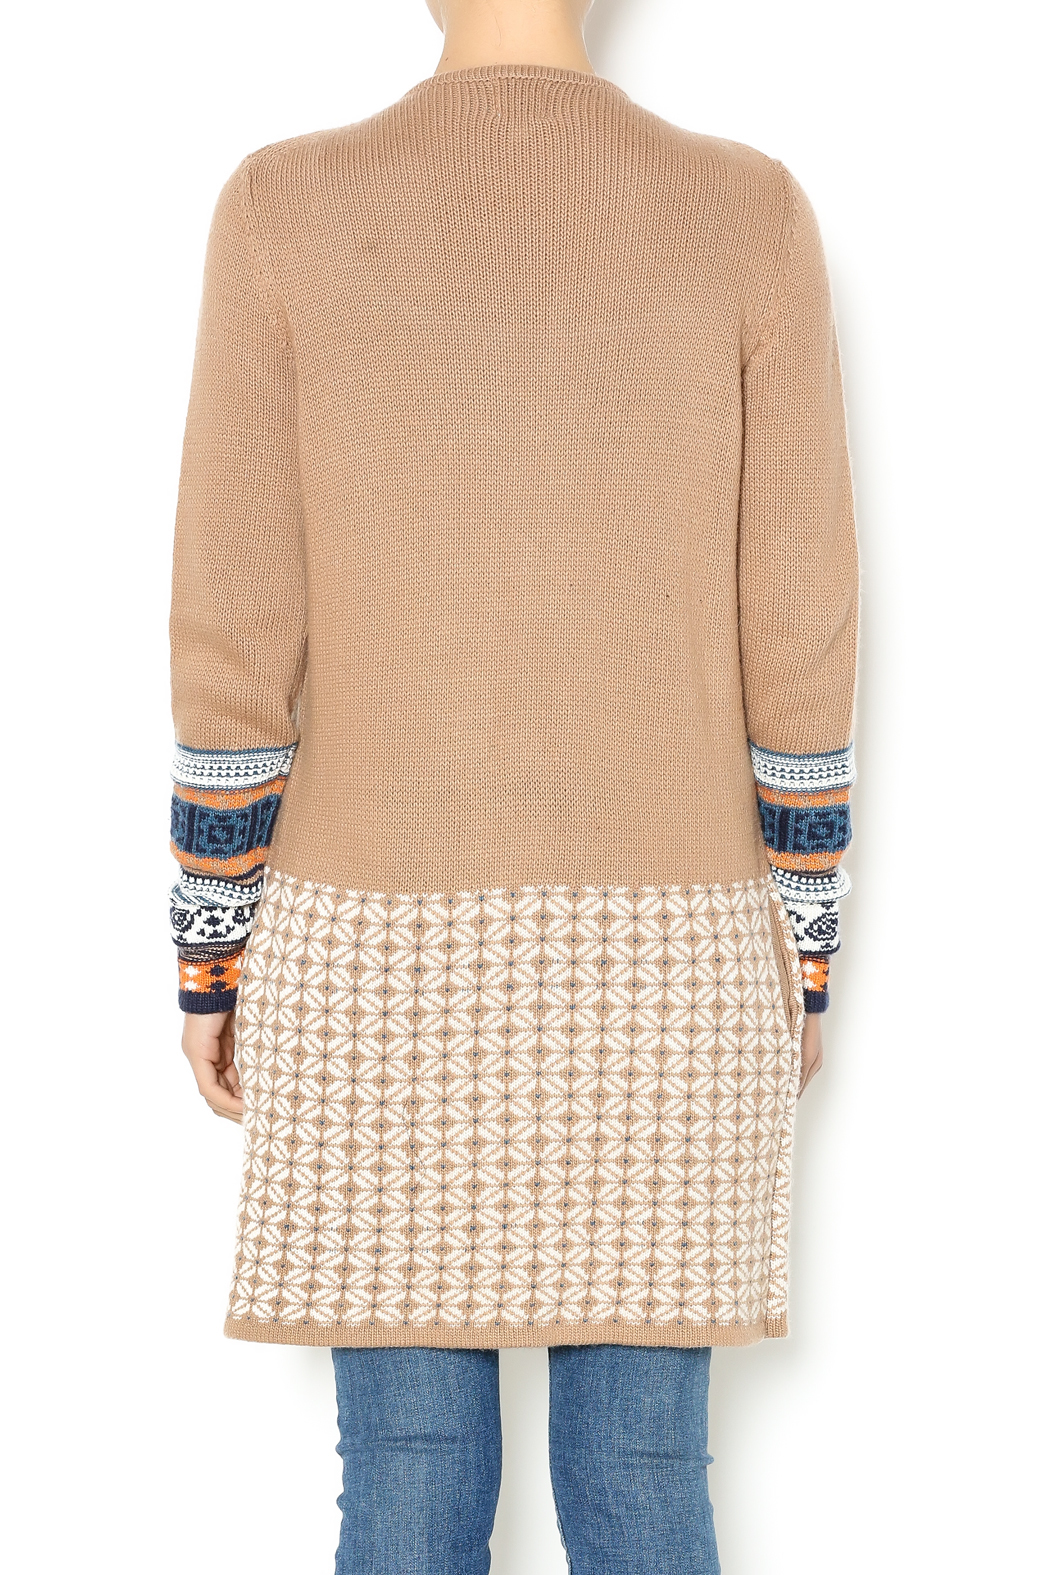 Yumi Tan Cardigan Sweater from Wisconsin by Lola May's — Shoptiques